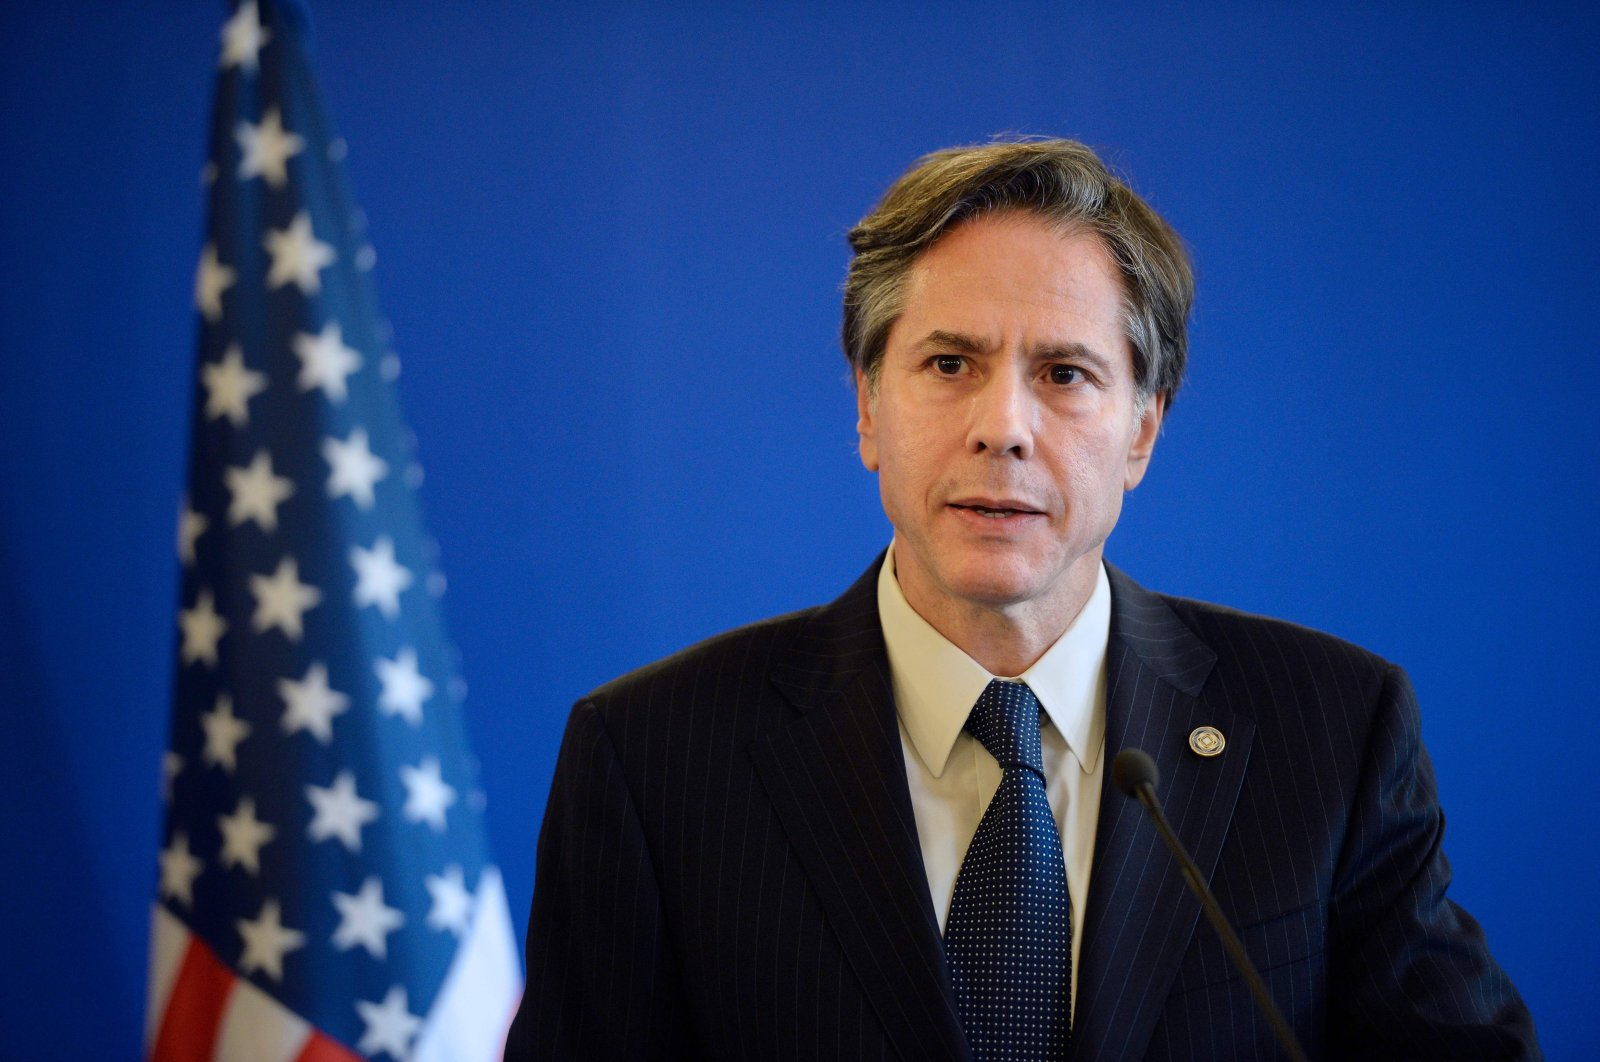 In this file photo former US Deputy Secretary of State Antony J Blinken gives a joint press conference following a meeting with Foreign Affairs member of the anti-Daesh coalition on June 2, 2015 in Paris. (AFP Photo)